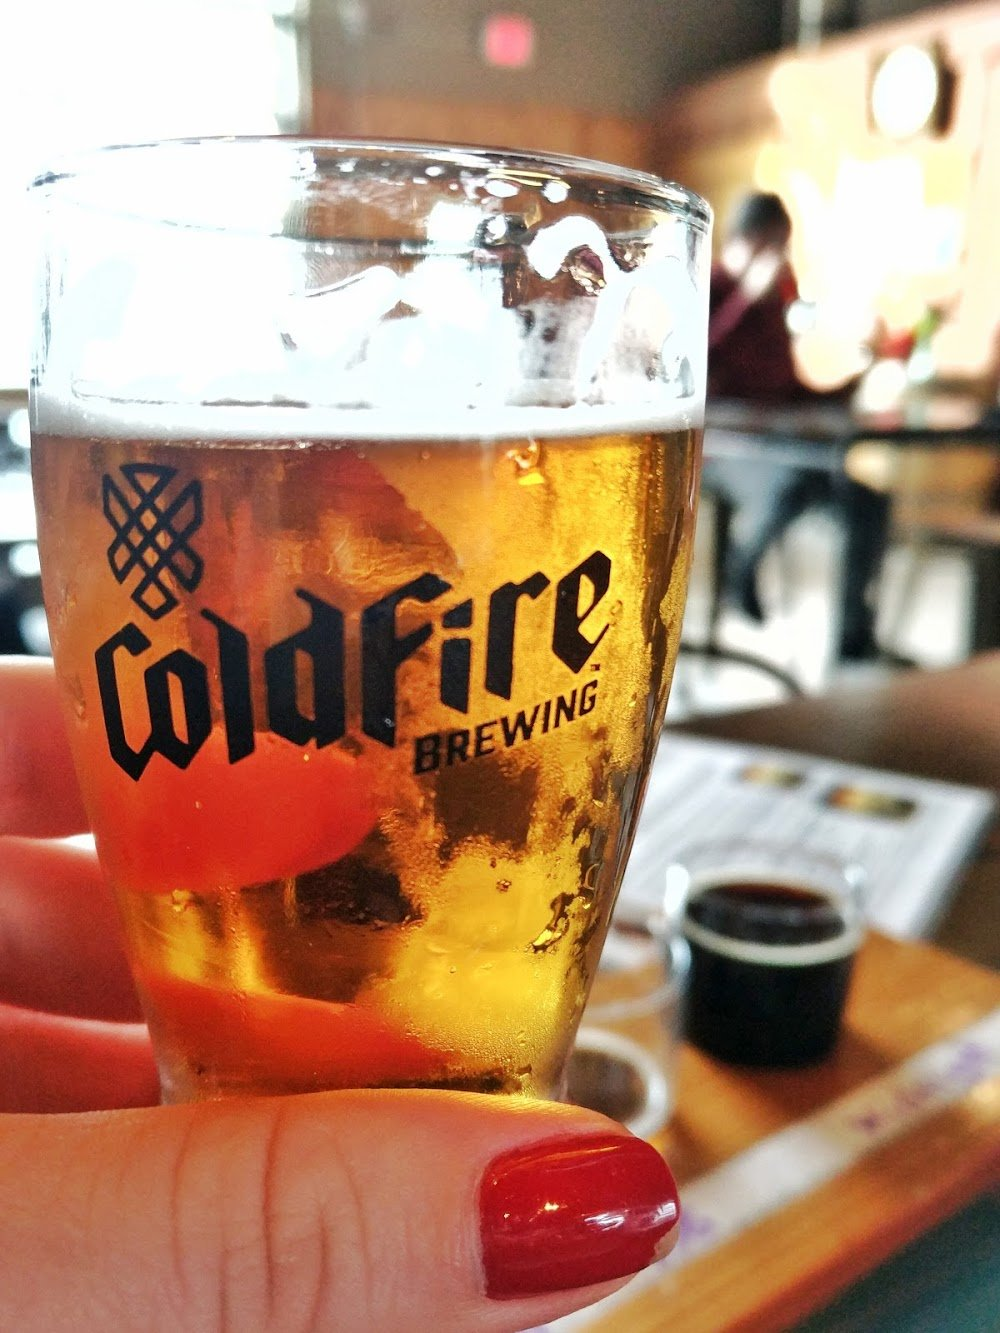 ColdFire Brewing Company